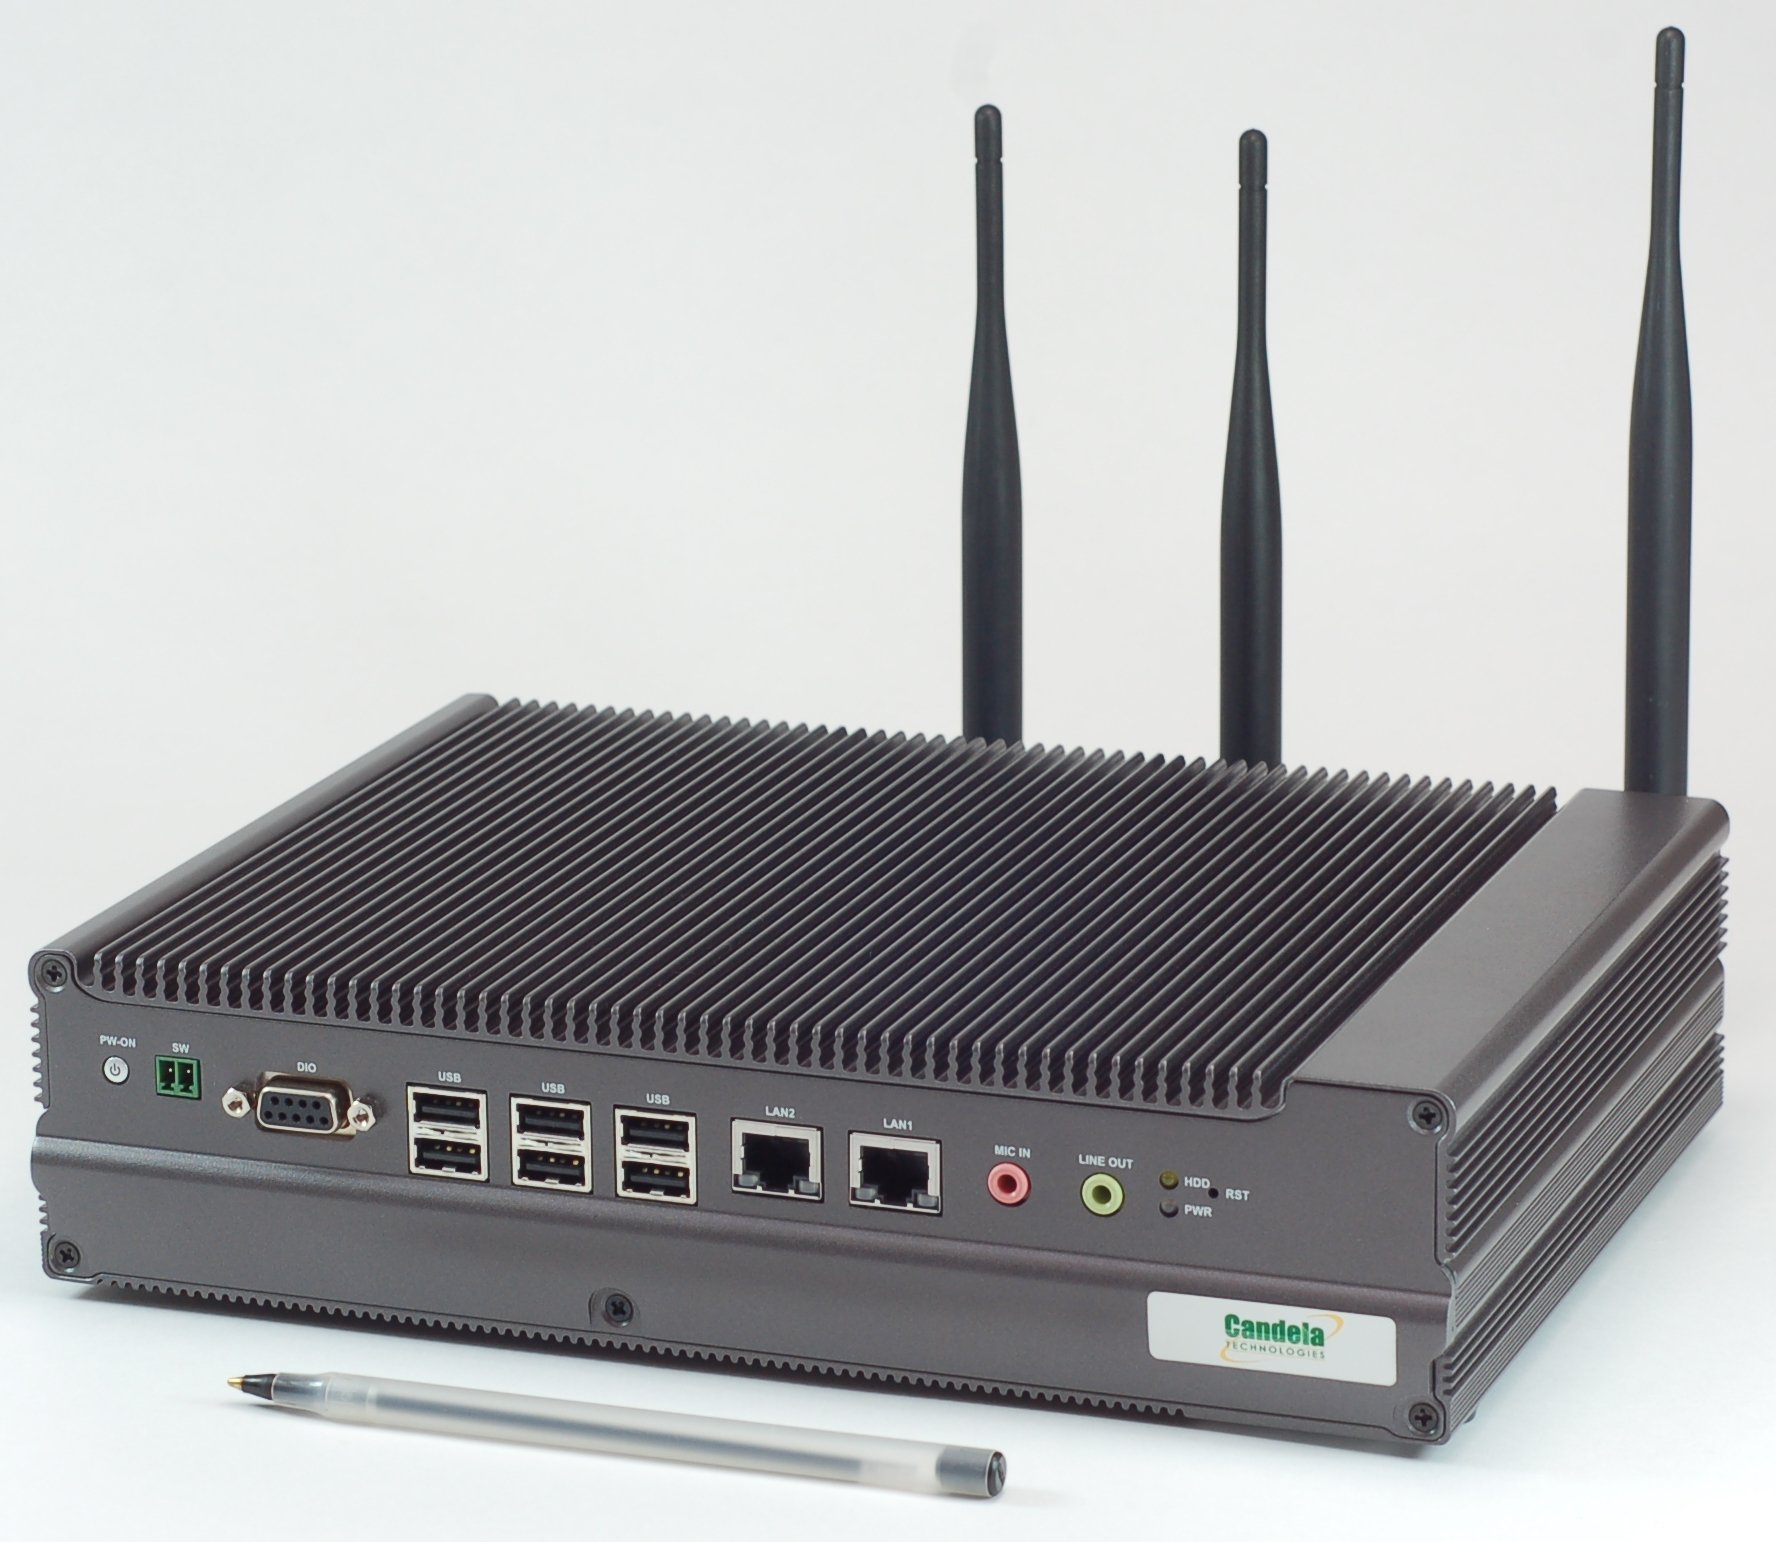 Candela WiFI Traffic CT520